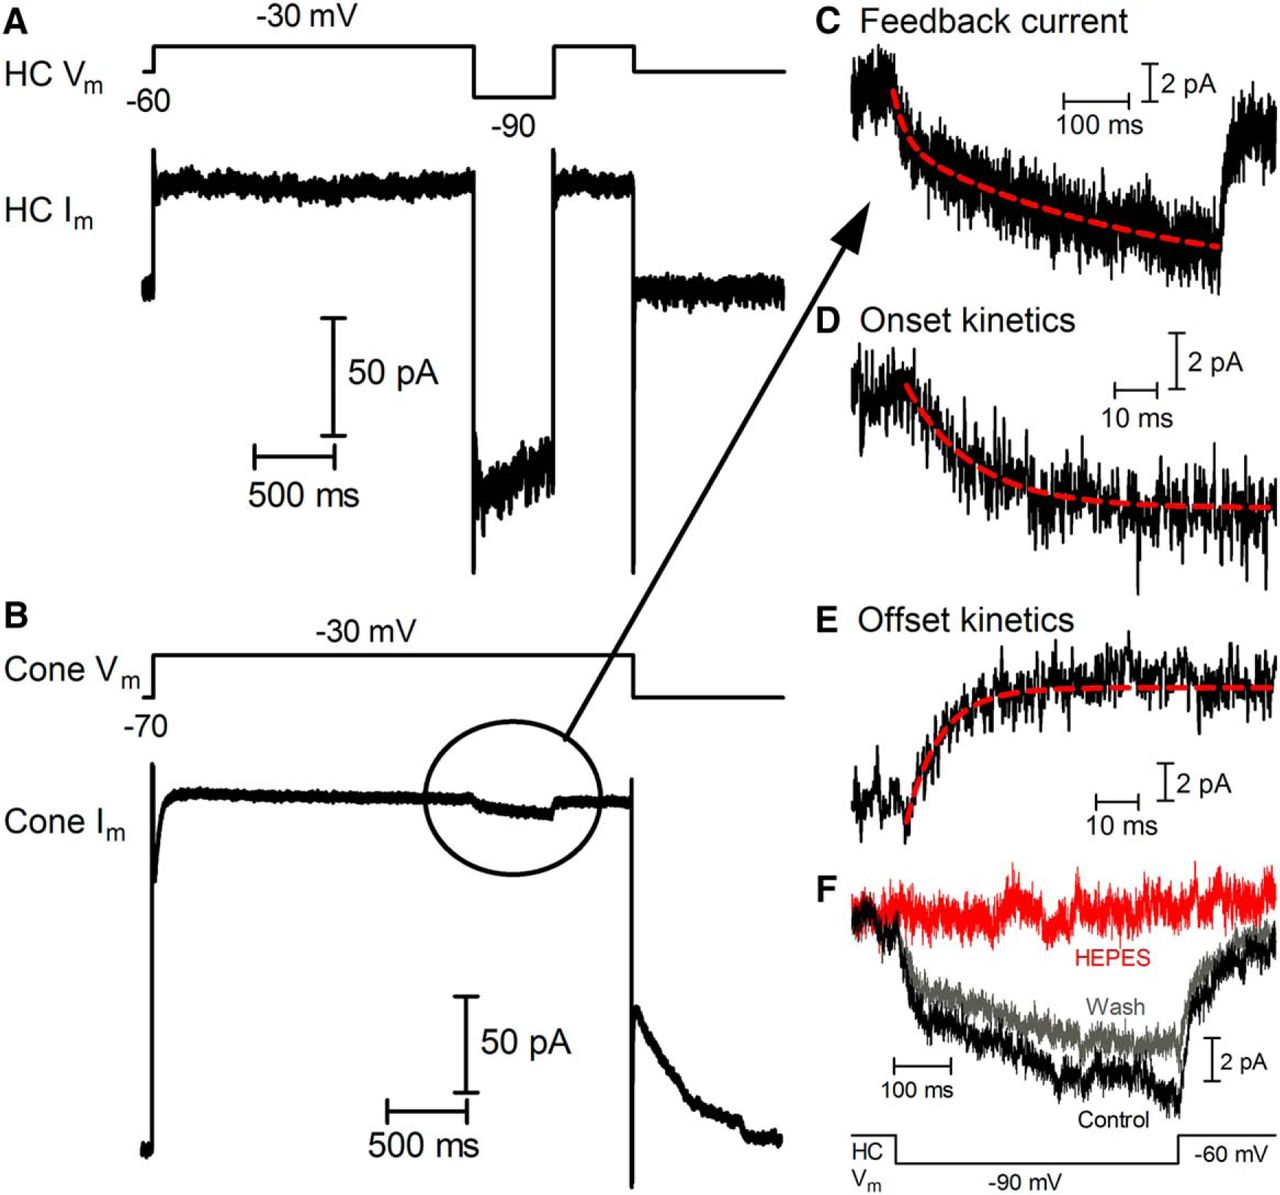 Kinetics of Inhibitory Feedback from Horizontal Cells to